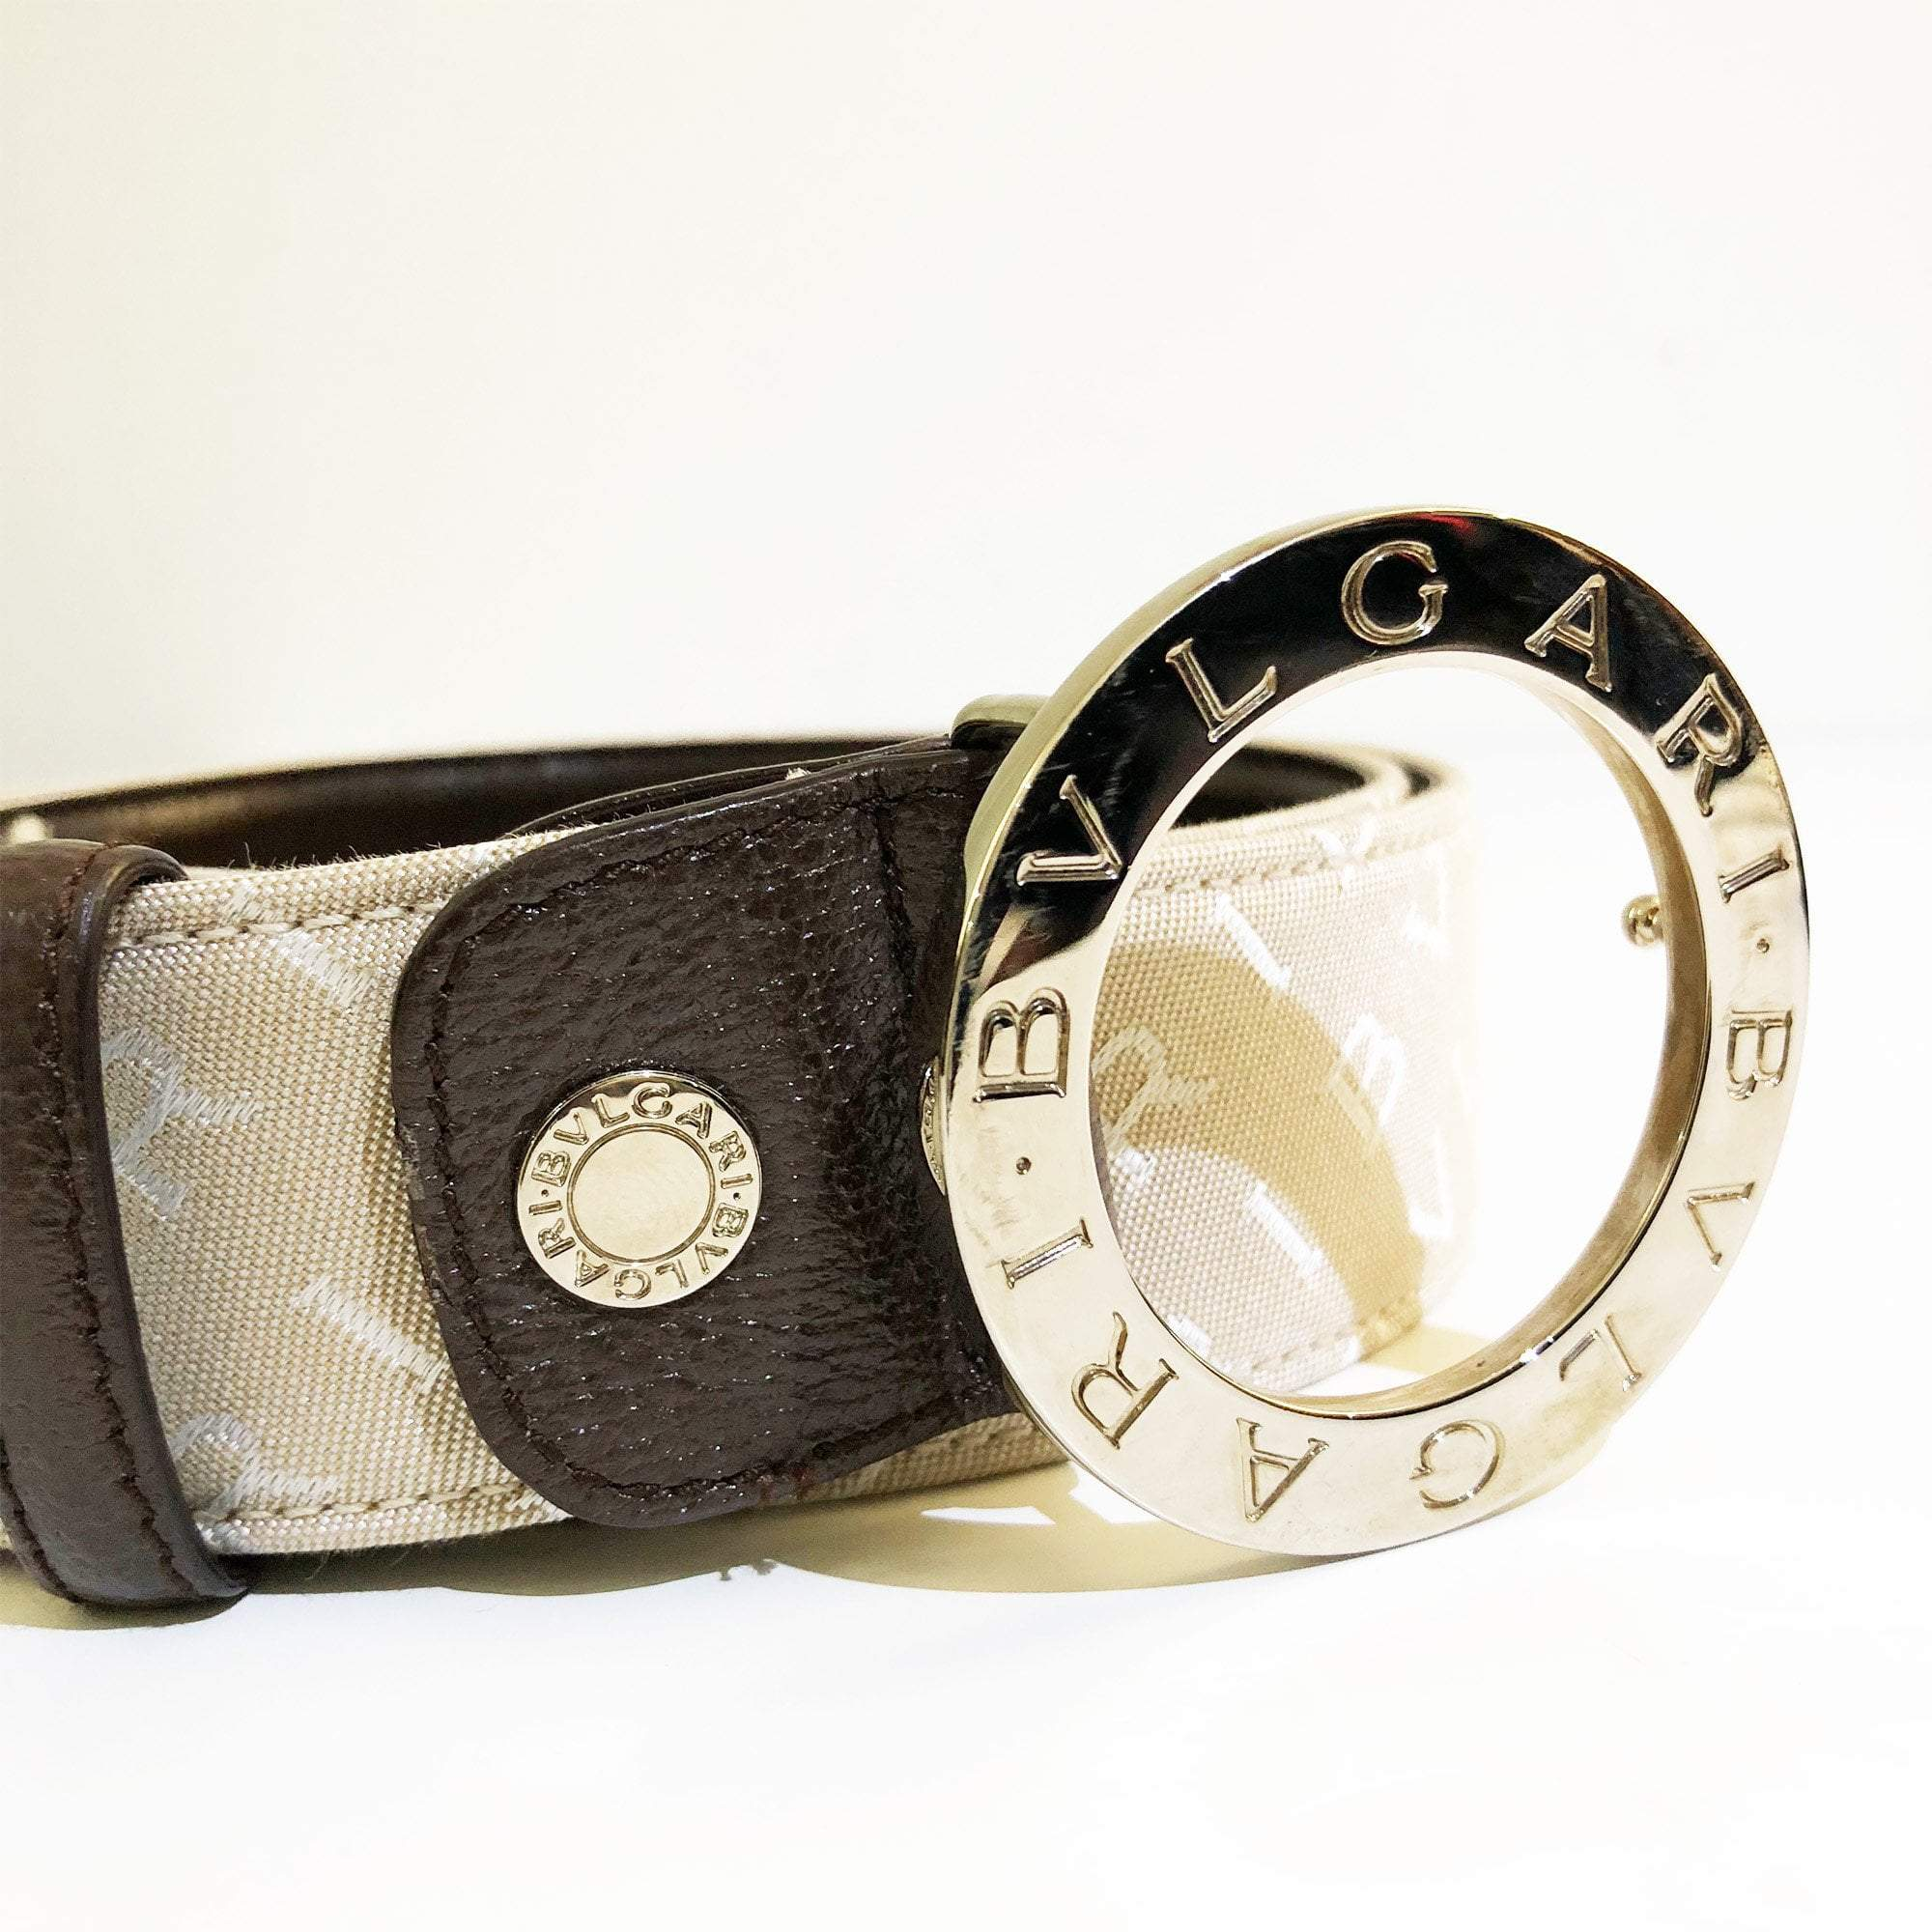 Bvlgari Signature Buckle Belt